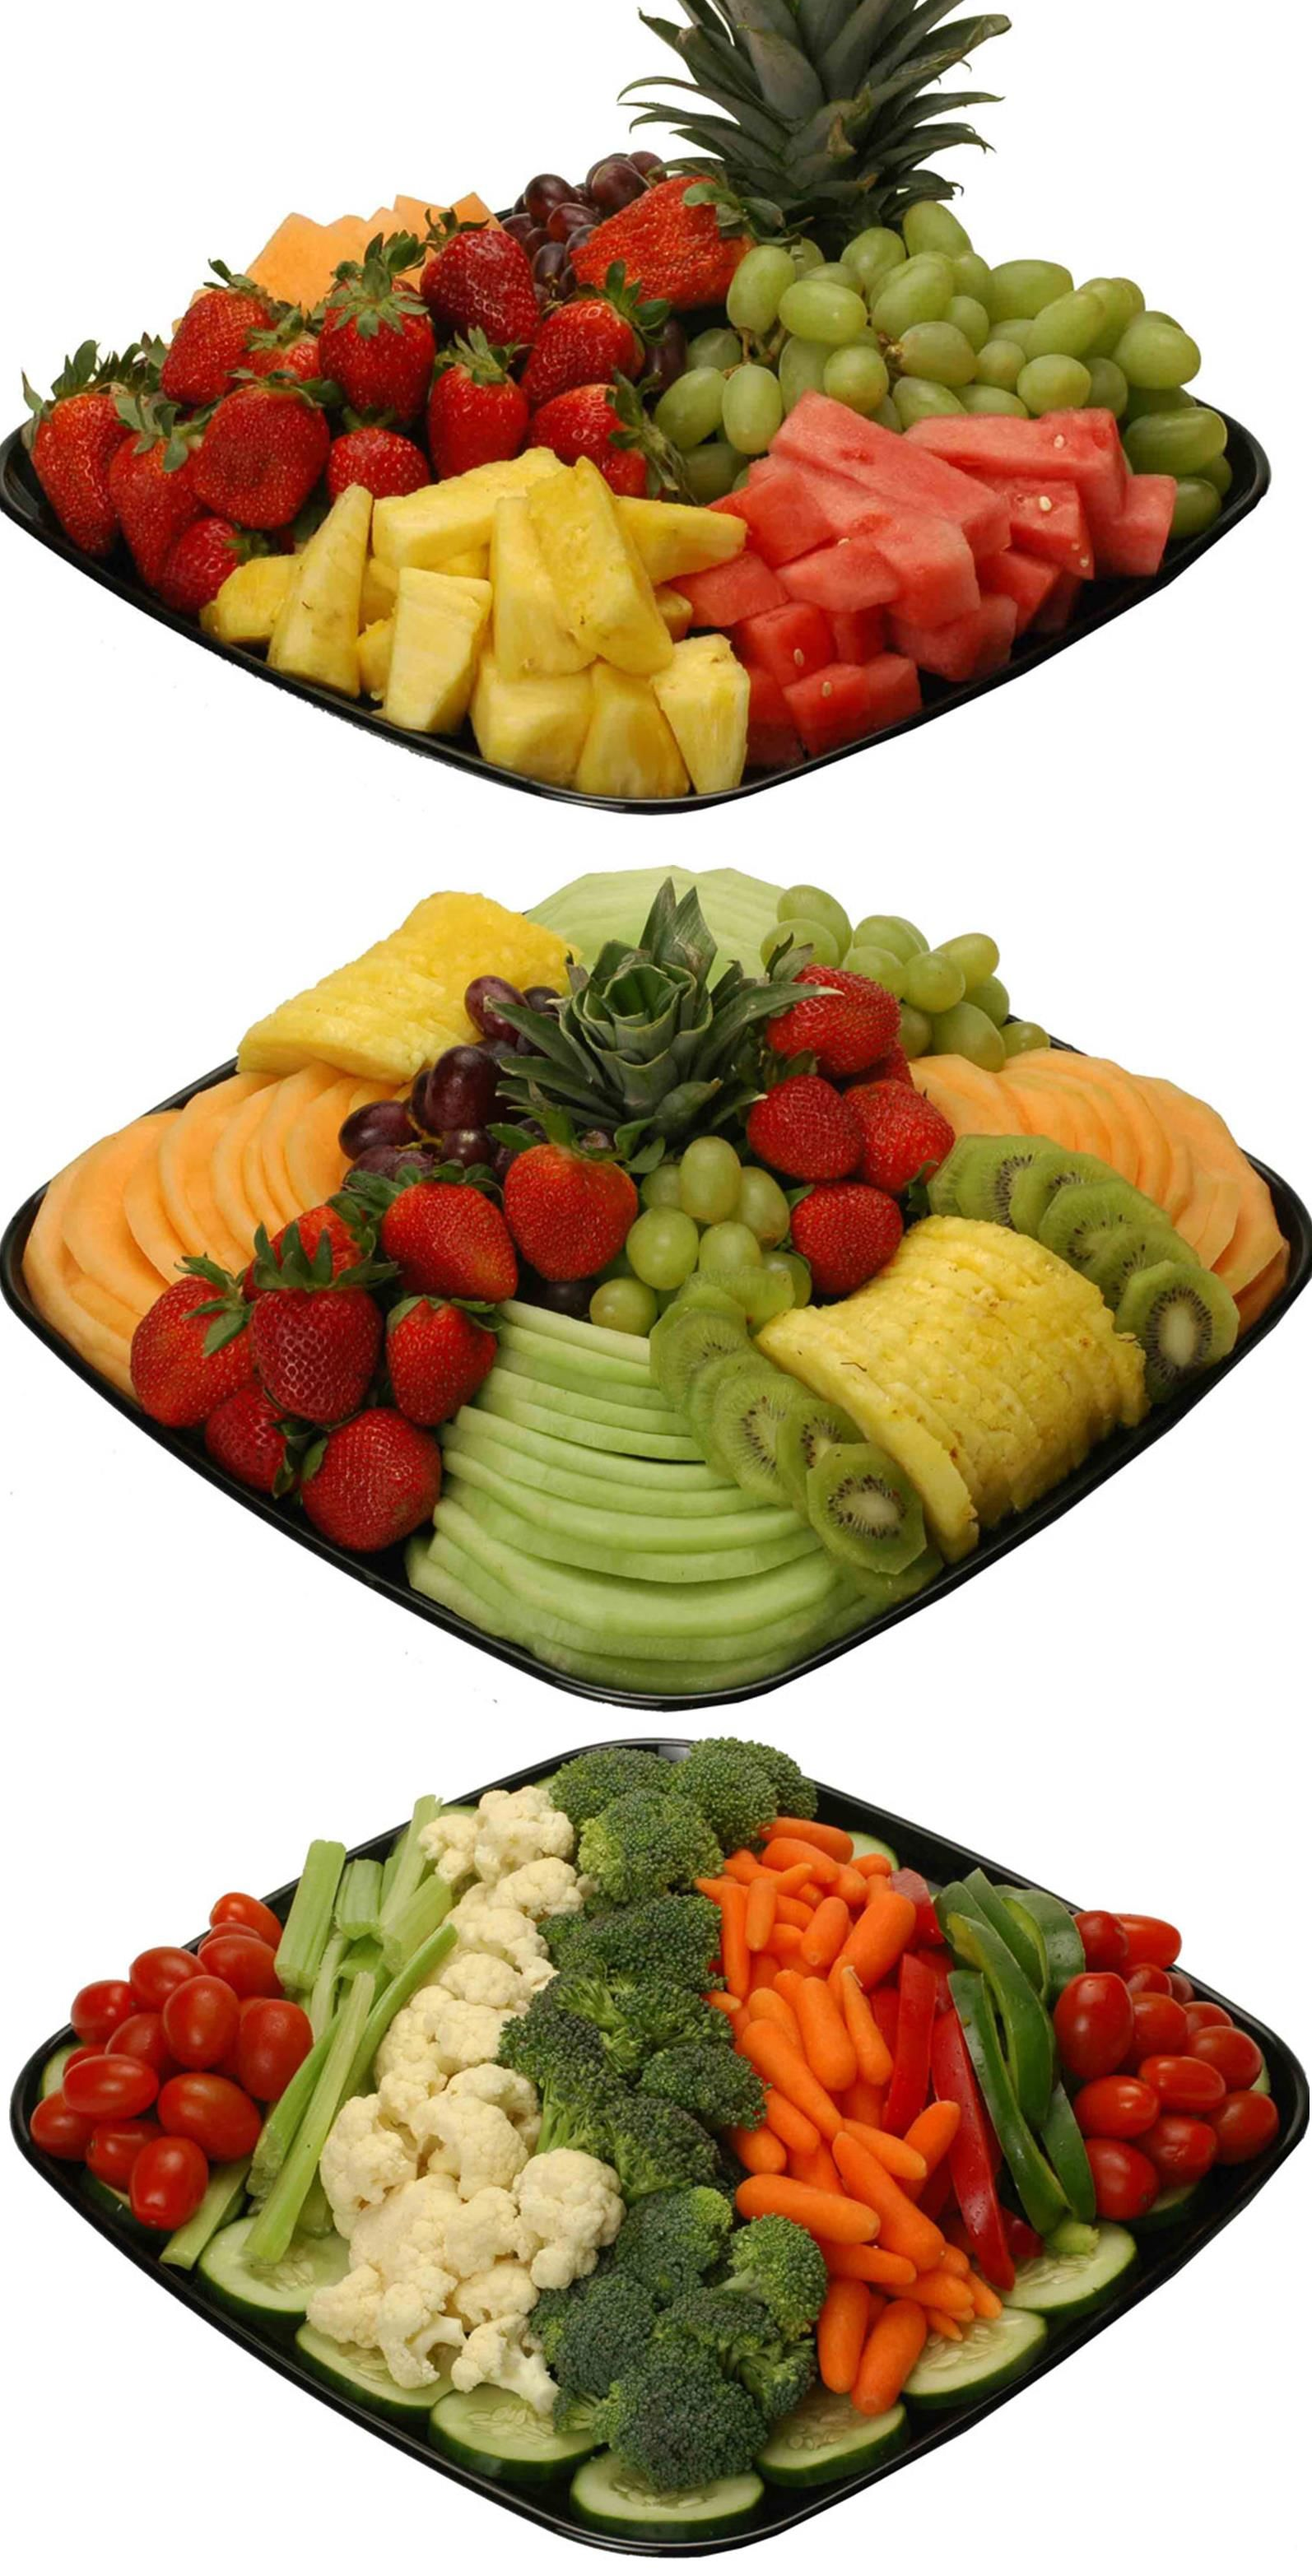 Deli fruit and ideas. Appetizers clipart veggie tray